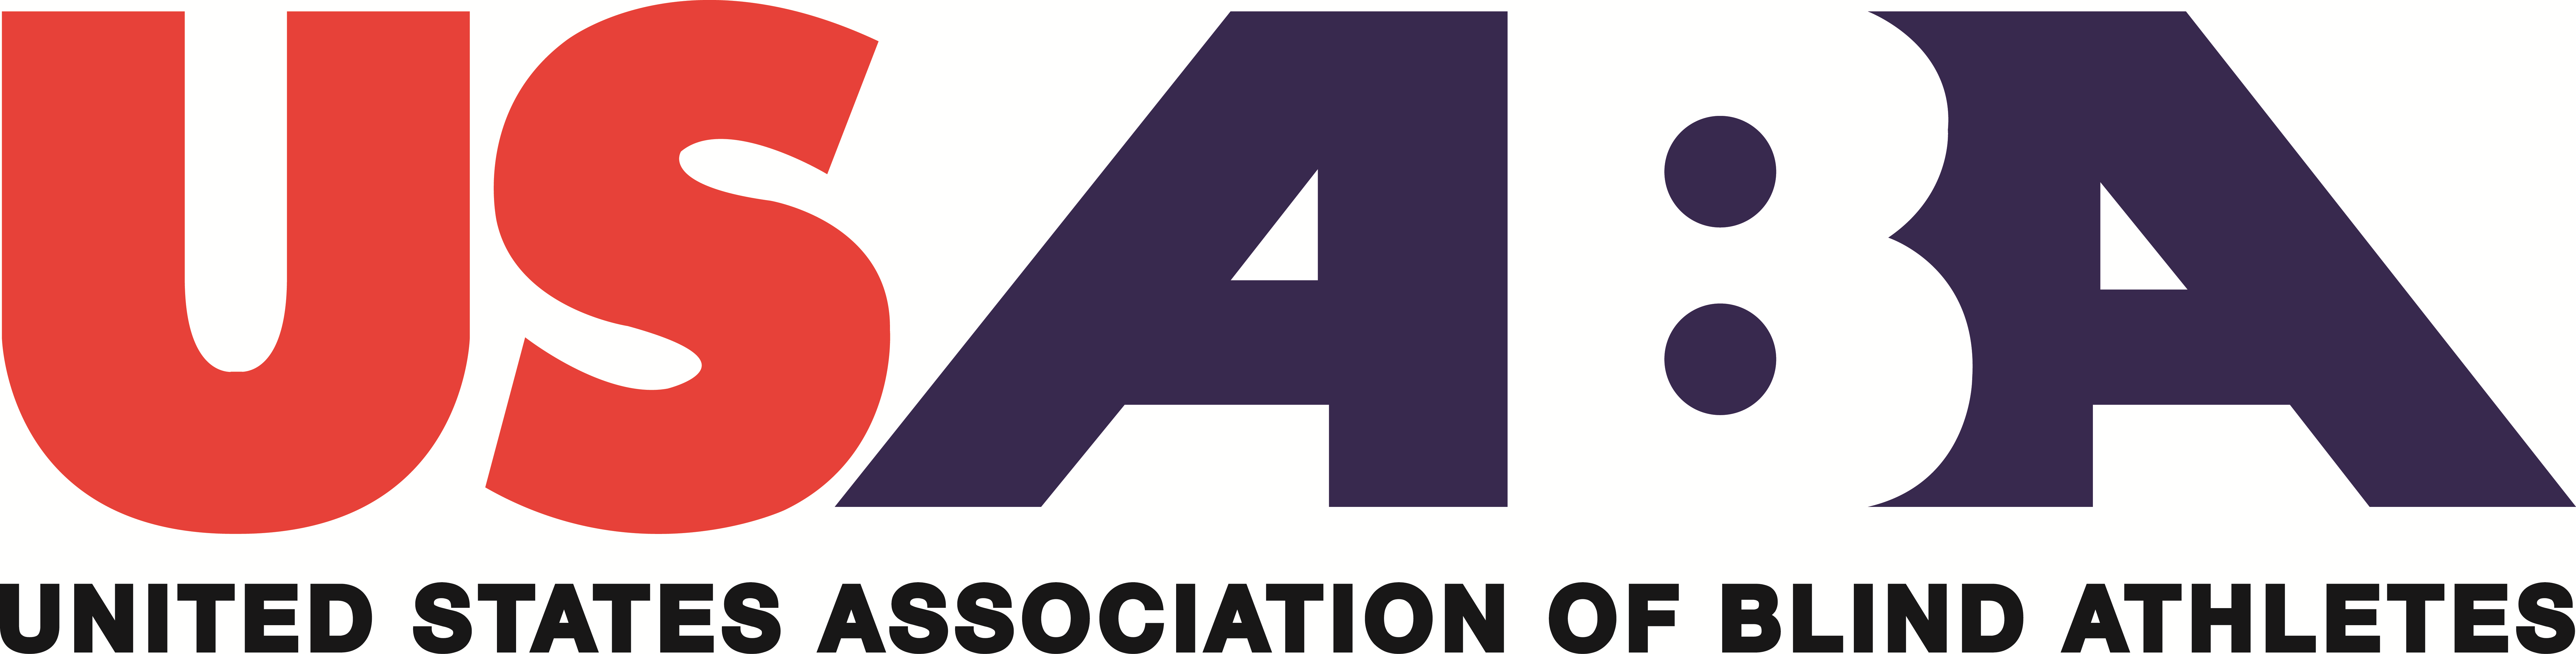 United States Association of Blind Athletes's Logo